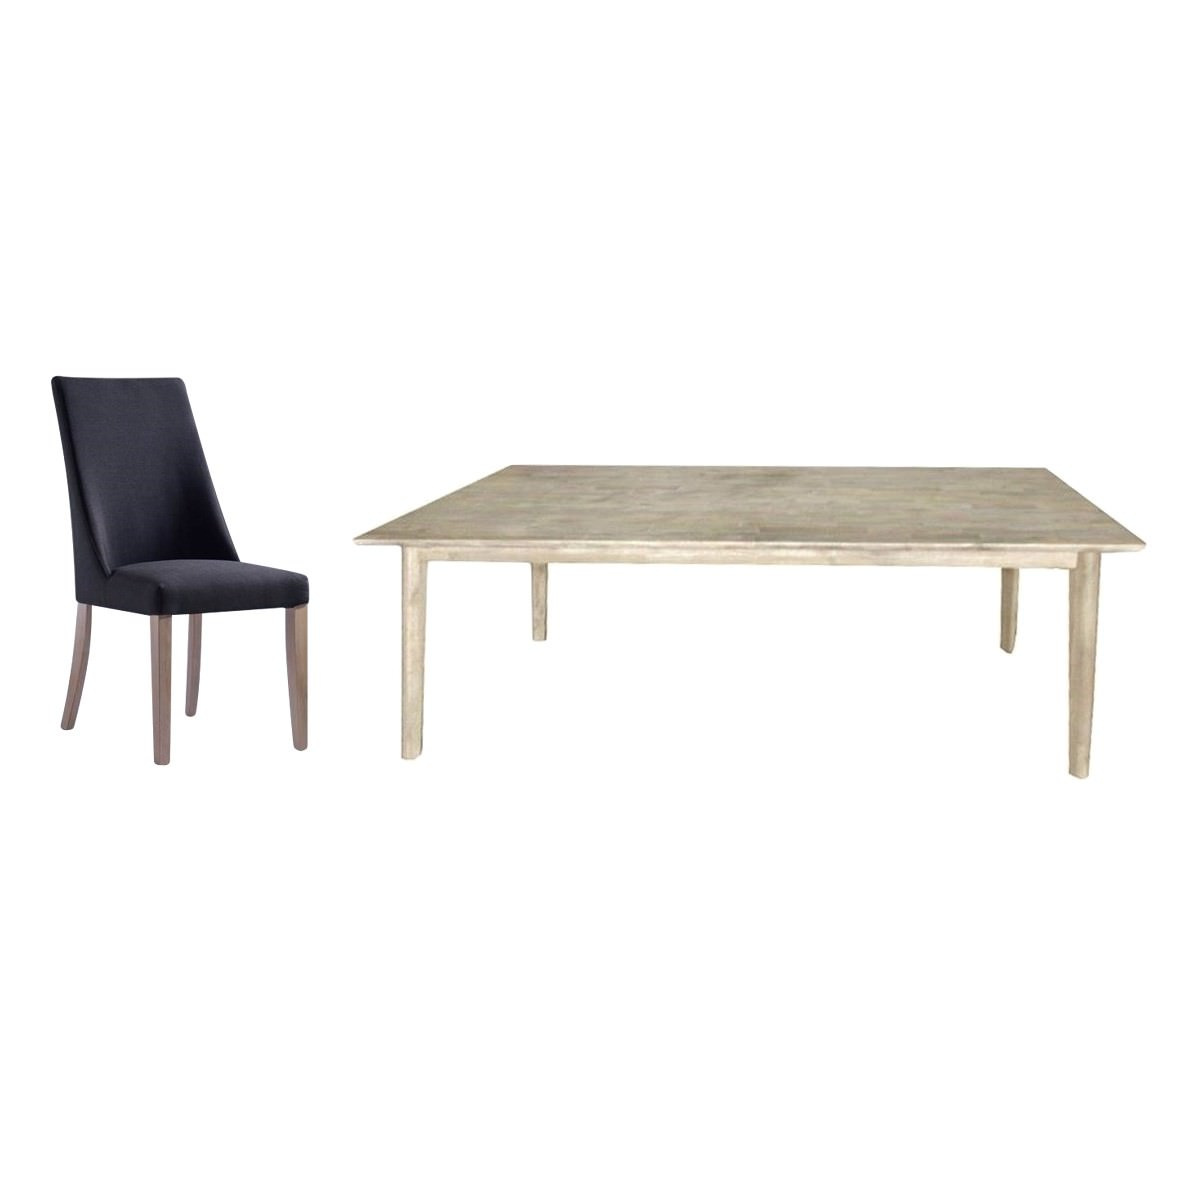 Clyde & Blandford 9 Piece Acacia Timber Dining Table Set, 210cm